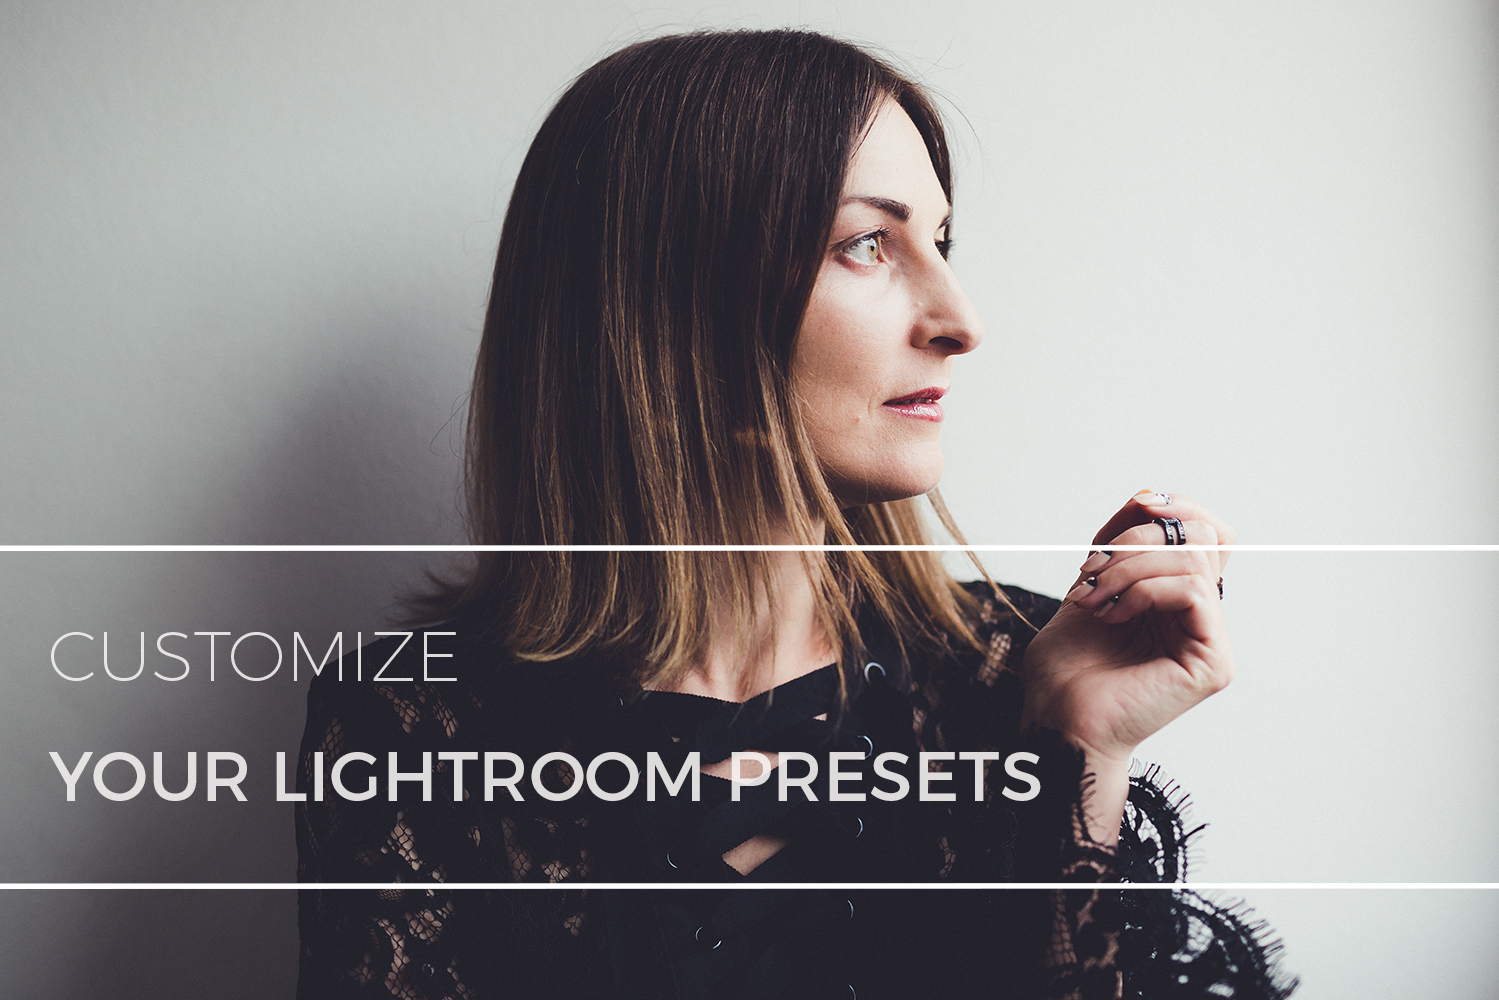 Using Lightroom Preset Part 2: Customizing Contrast, Fading, and skin tones